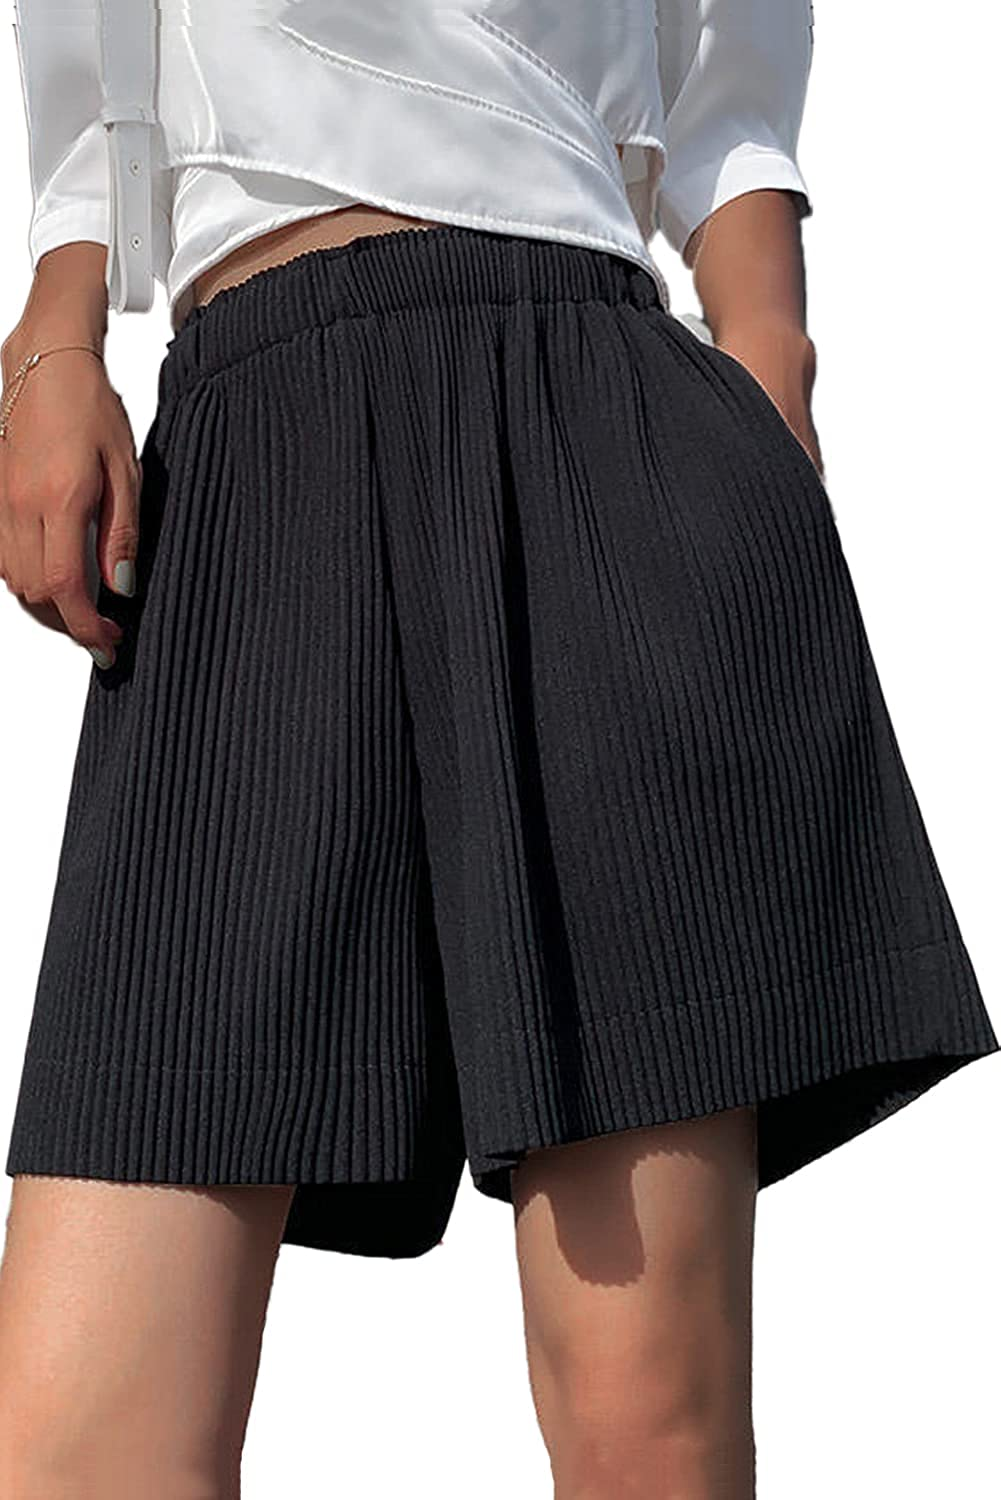 Onesyleaf Womens Shorts for Summer Casual Soft Comfy Elastic High Waisted Loose Fit Pleated Bermuda Shorts with Pockets